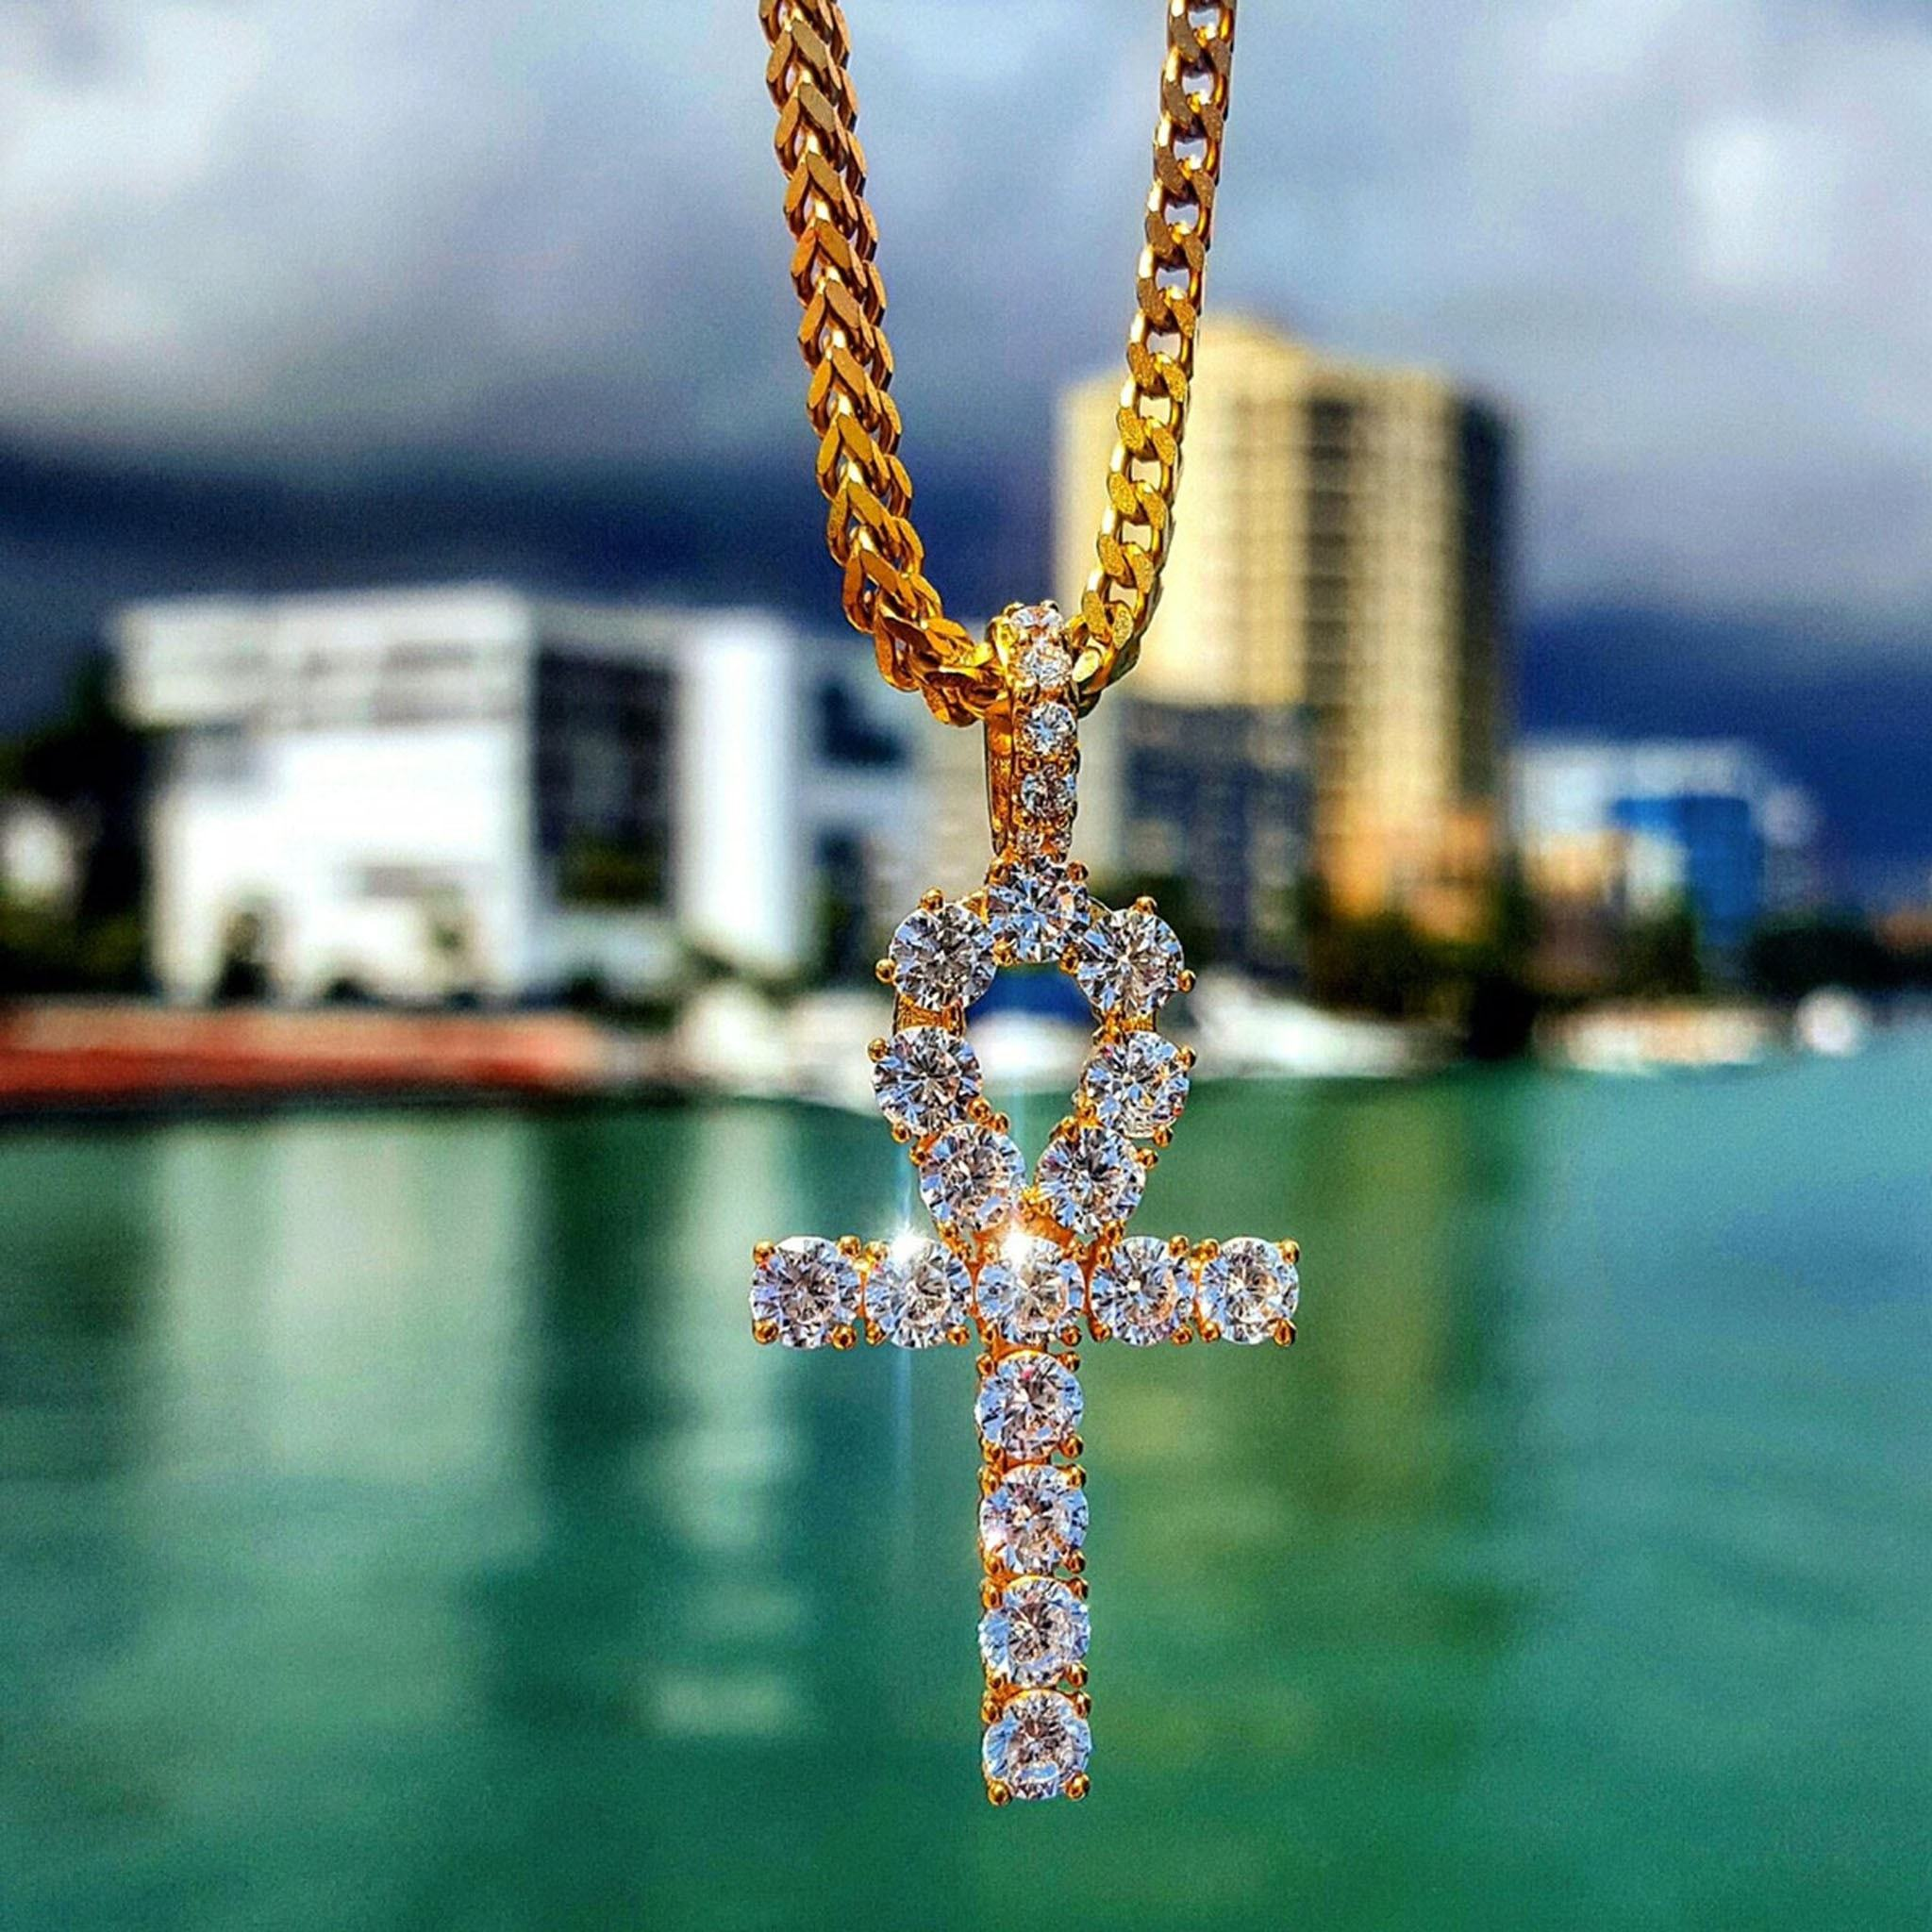 Egyptian Ankh Life Necklace That Ankh Life